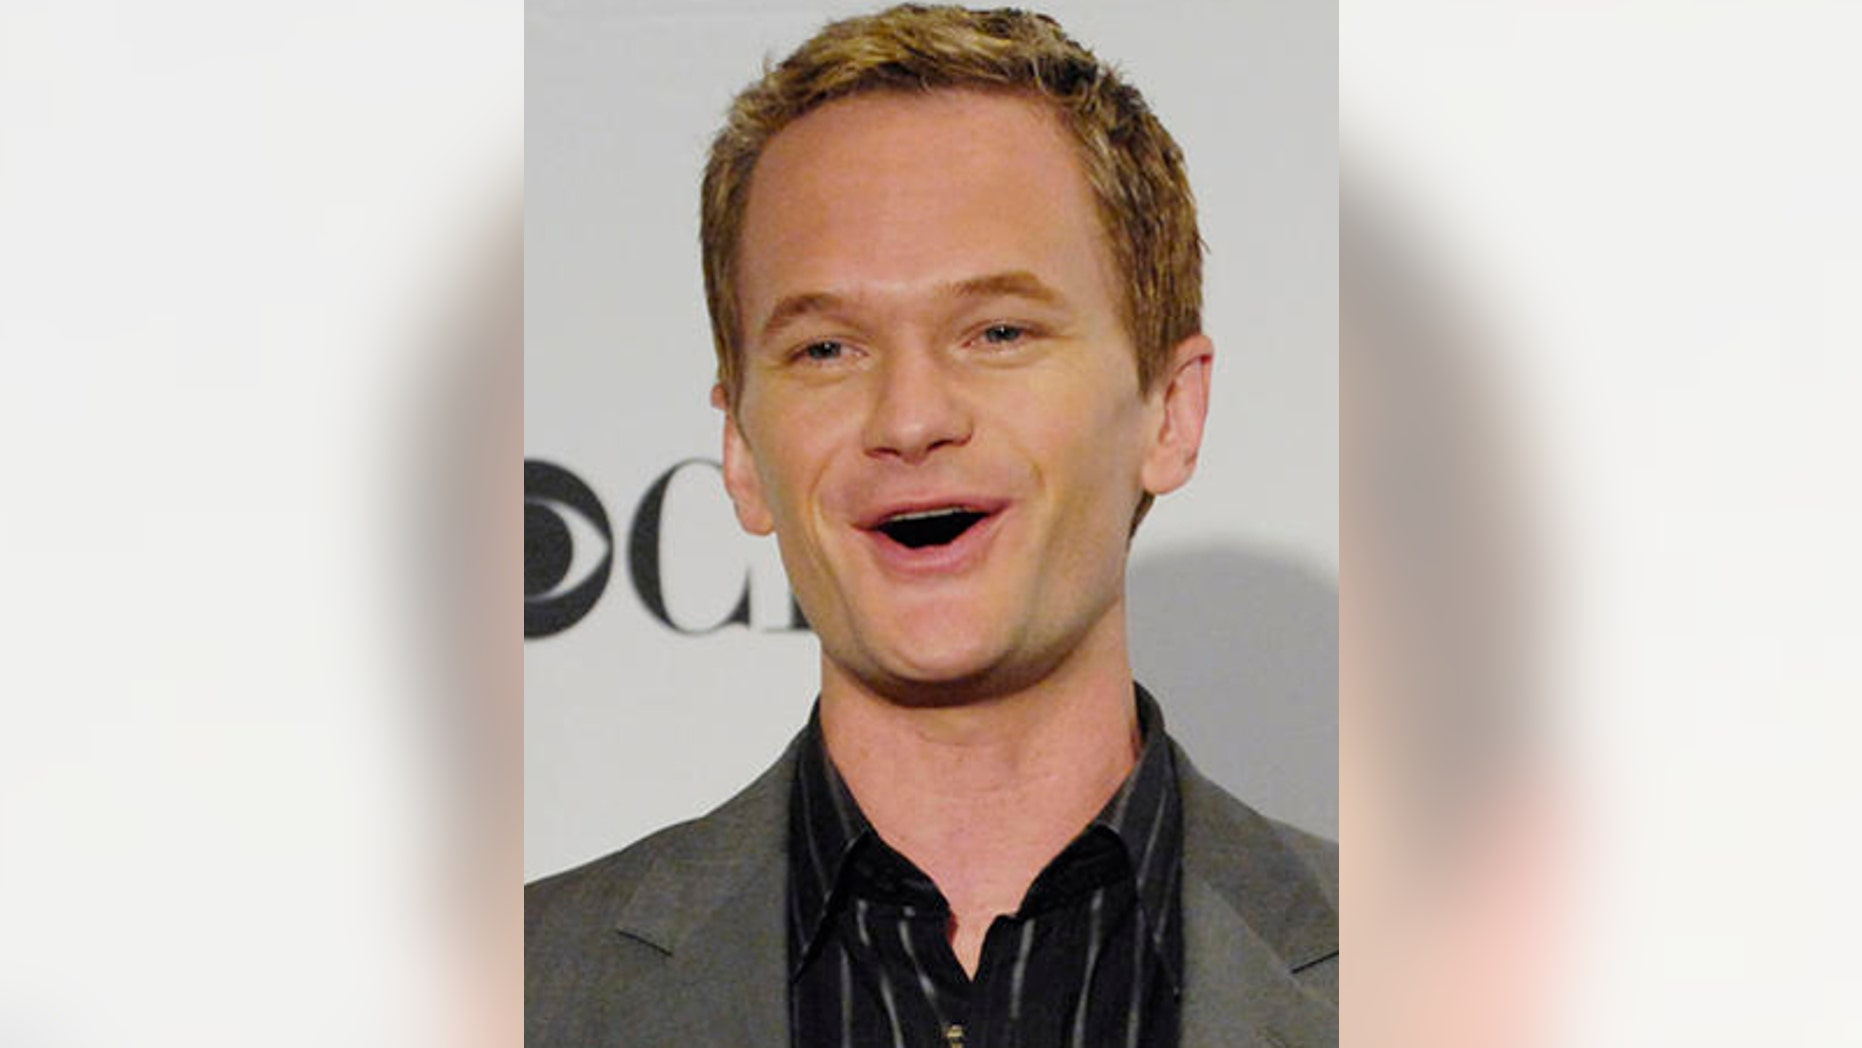 """**FILE**Actor Neil Patrick Harris announces nominations for the 33rd Annual People's Choice Awards, in Beverly Hills, Calif., Tuesday, Nov. 7, 2006. Earlier this month he told People's Web site he was gay, saying he was responding to """"speculation and interest in my private life and relationships.""""( AP Photo/Chris Pizzello)"""